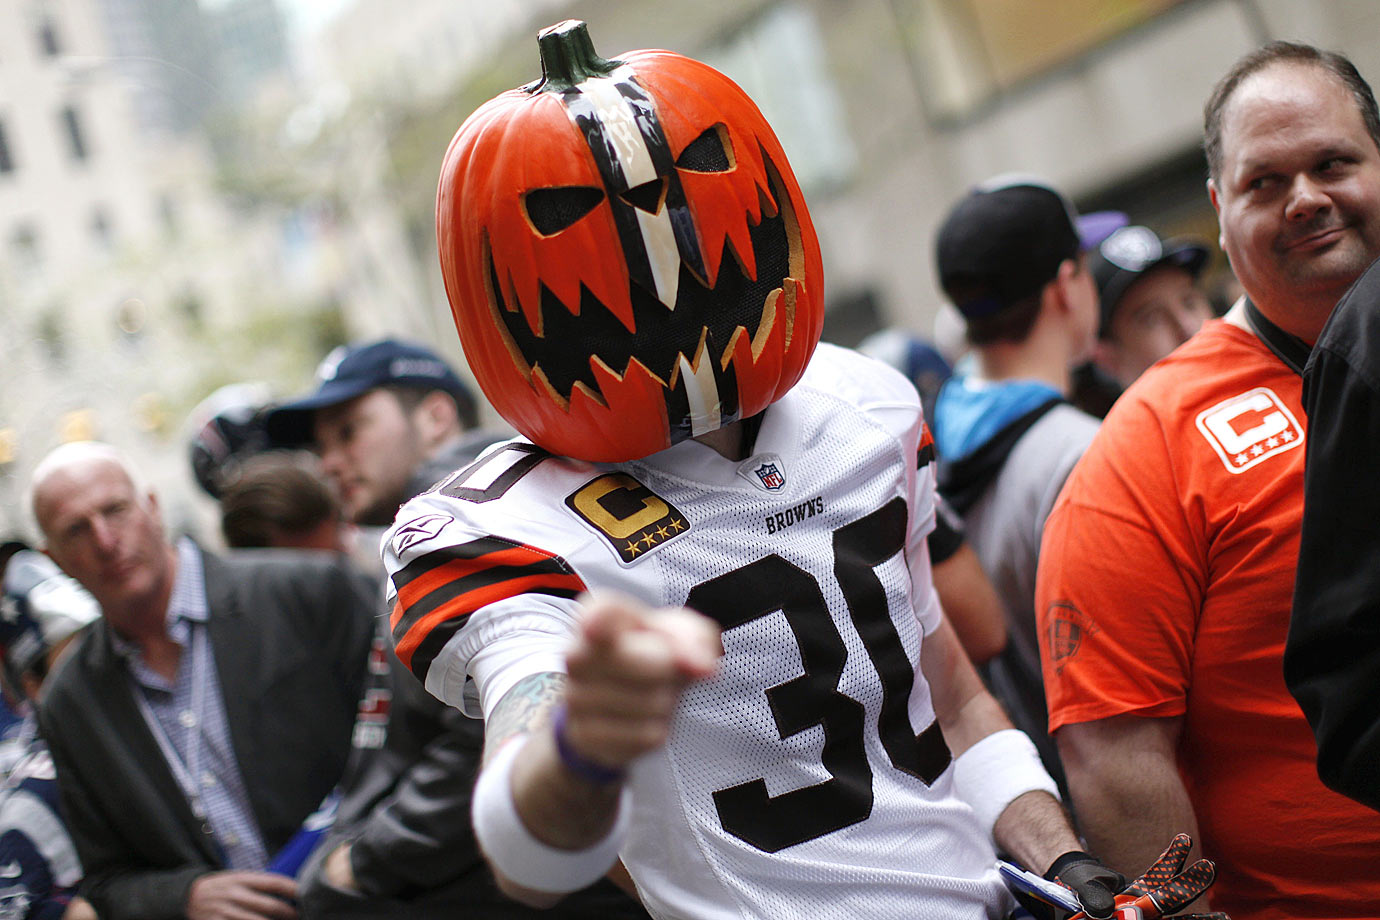 Cleveland Browns fan in 2014.